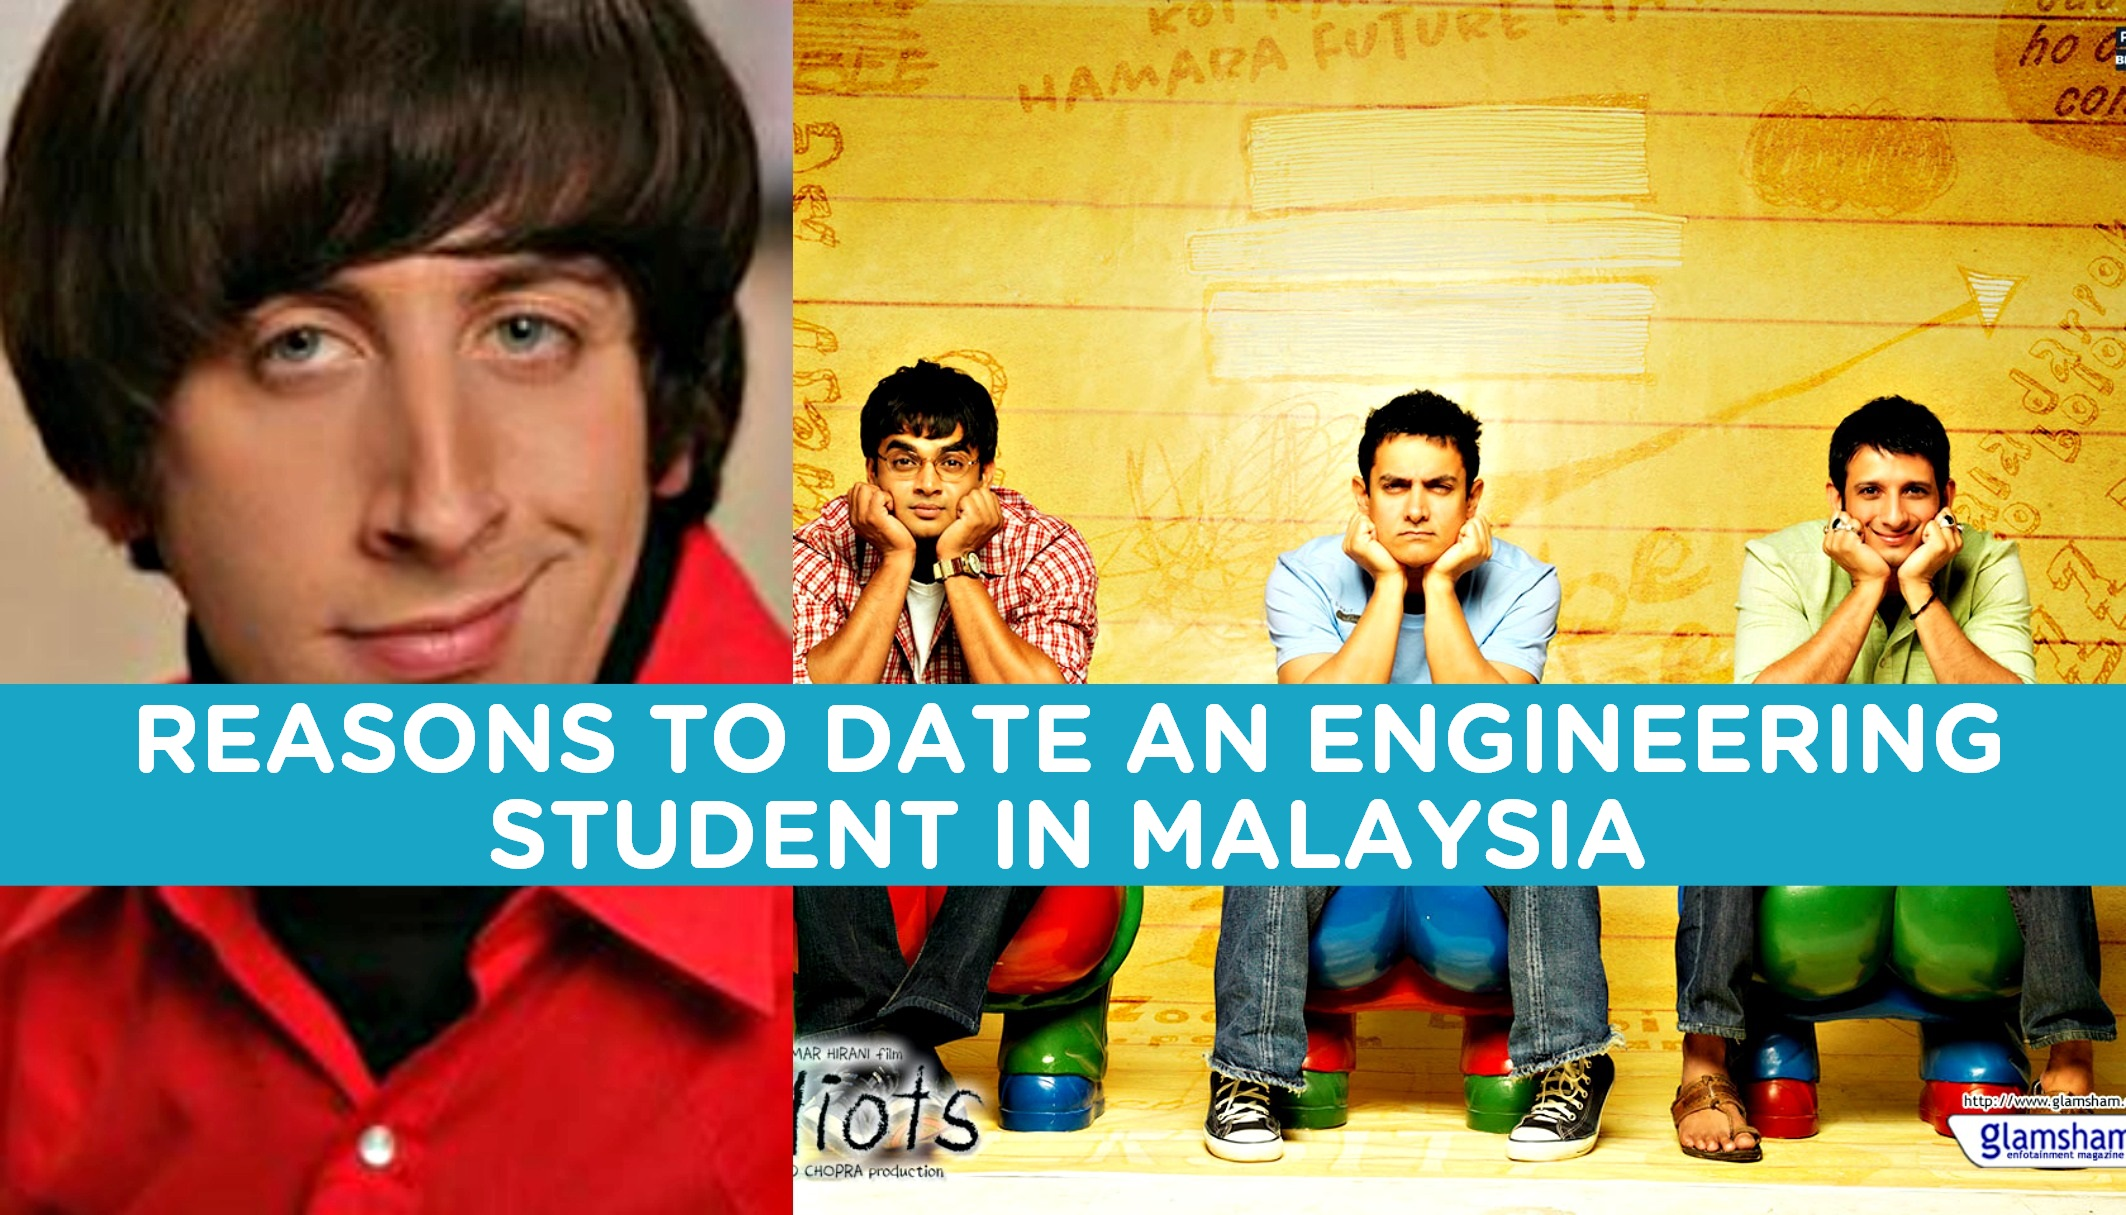 Dating an engineering student